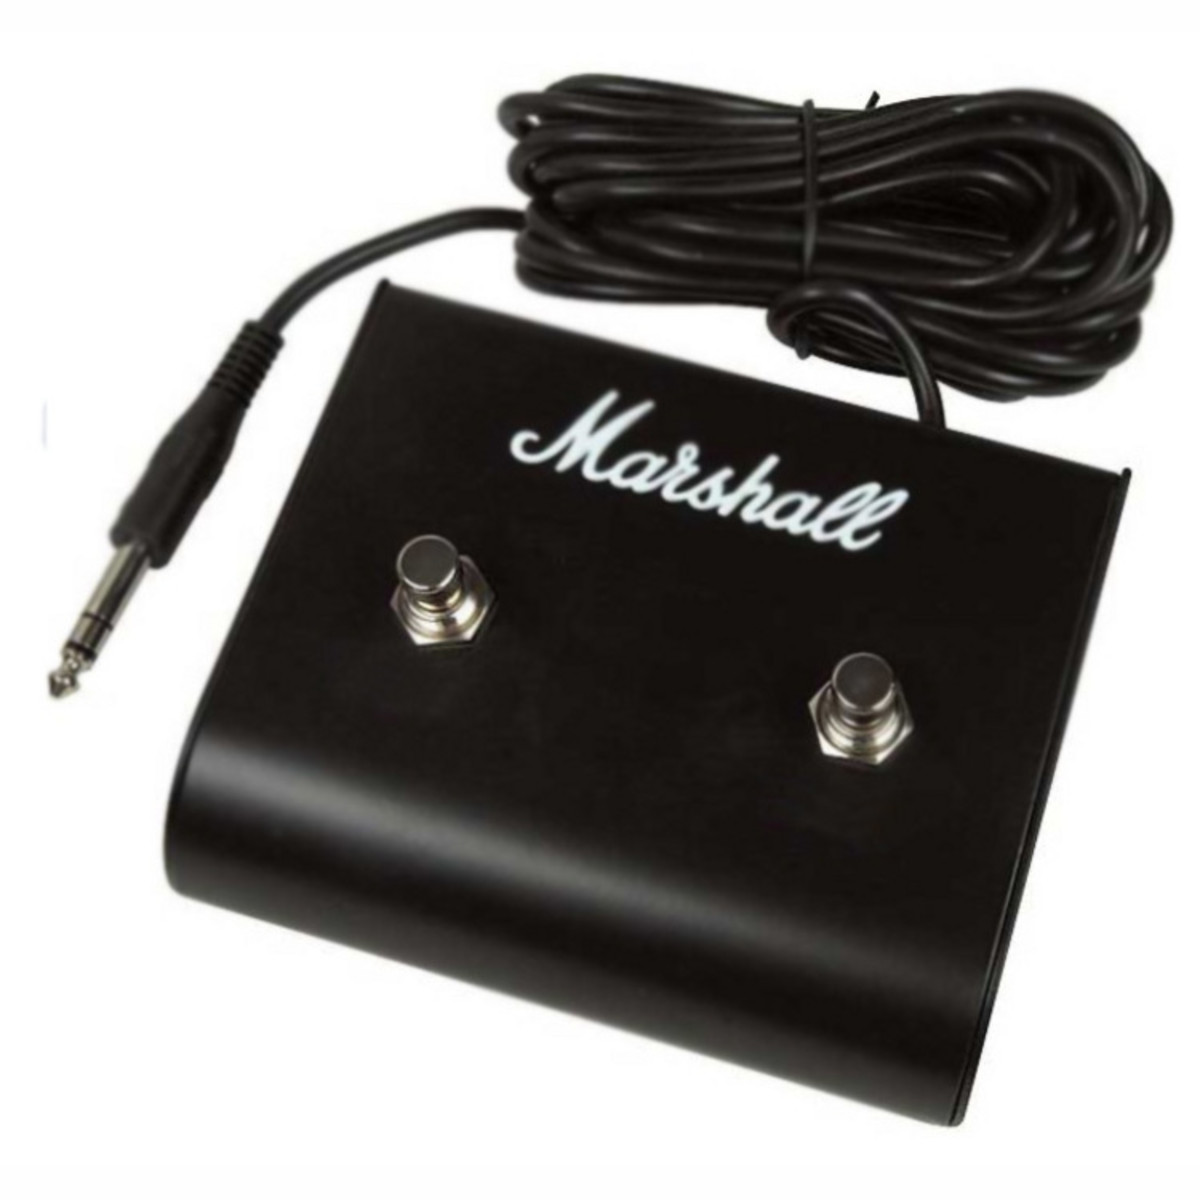 Marshall Way Footswitch ChannelDFX MGDFXDFXDFX - Two way footswitch